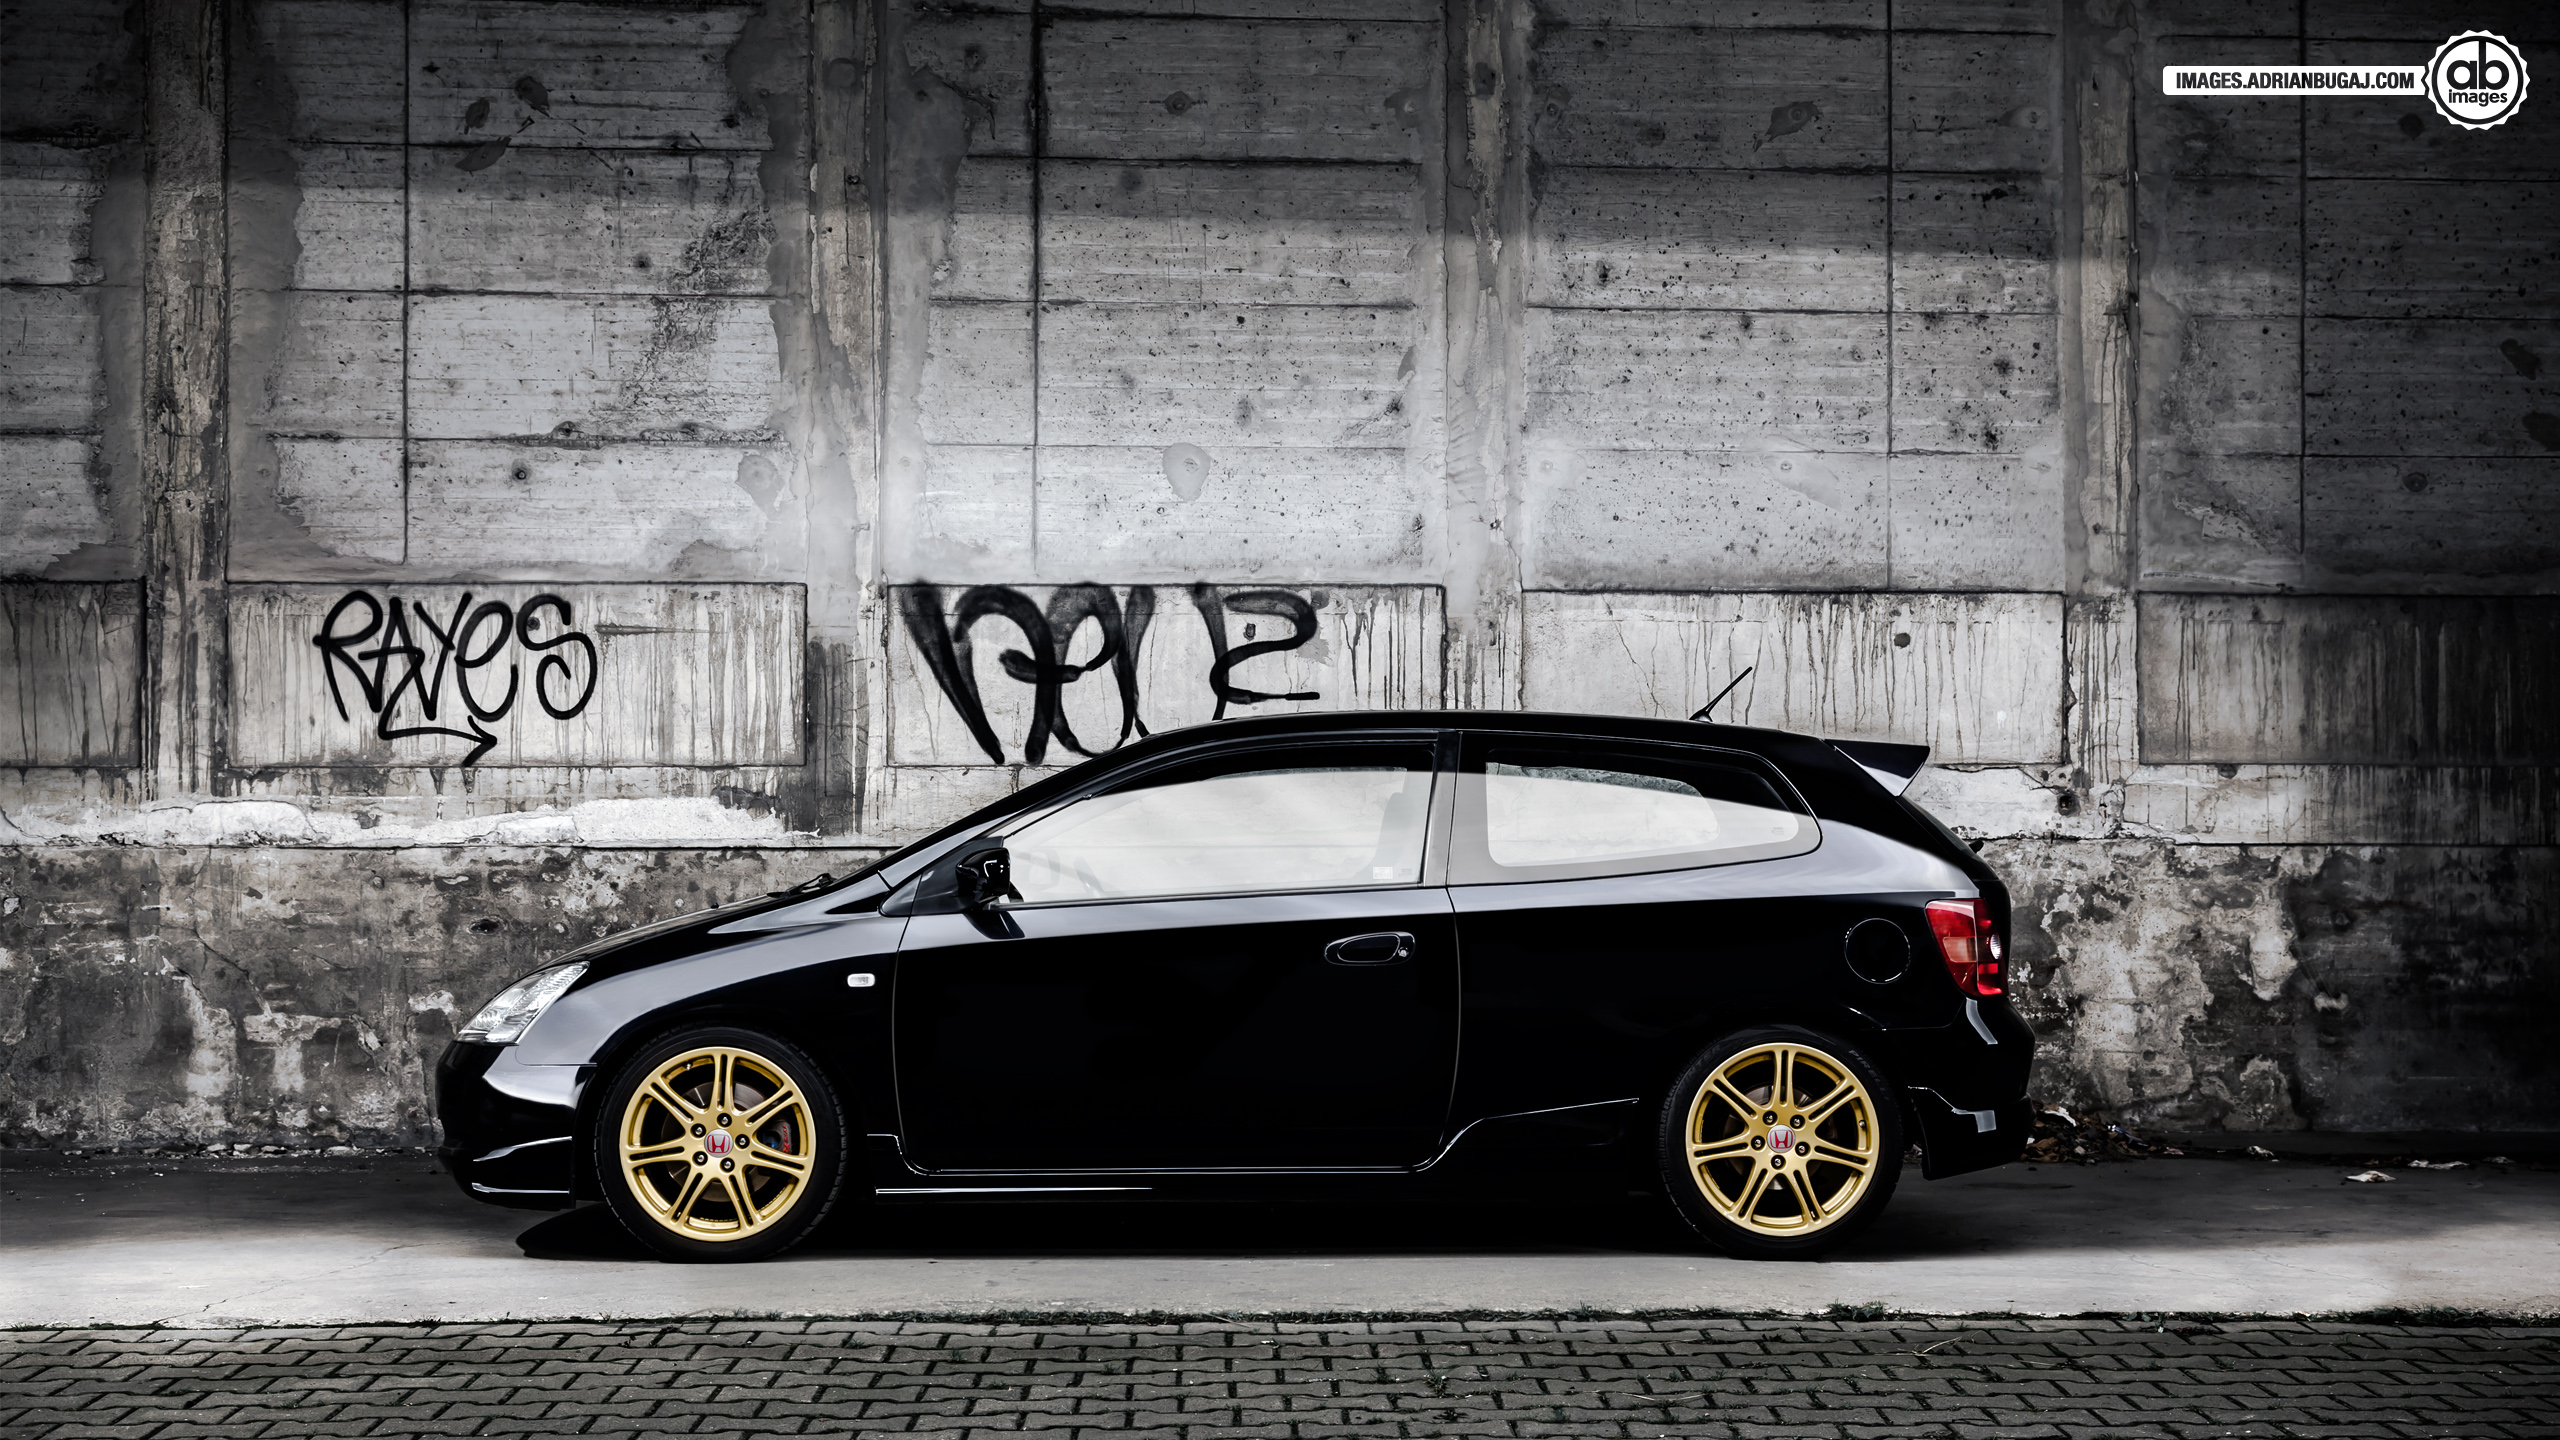 AB.IMAGES - WALLPAPER HONDA CIVIC TYPE-R